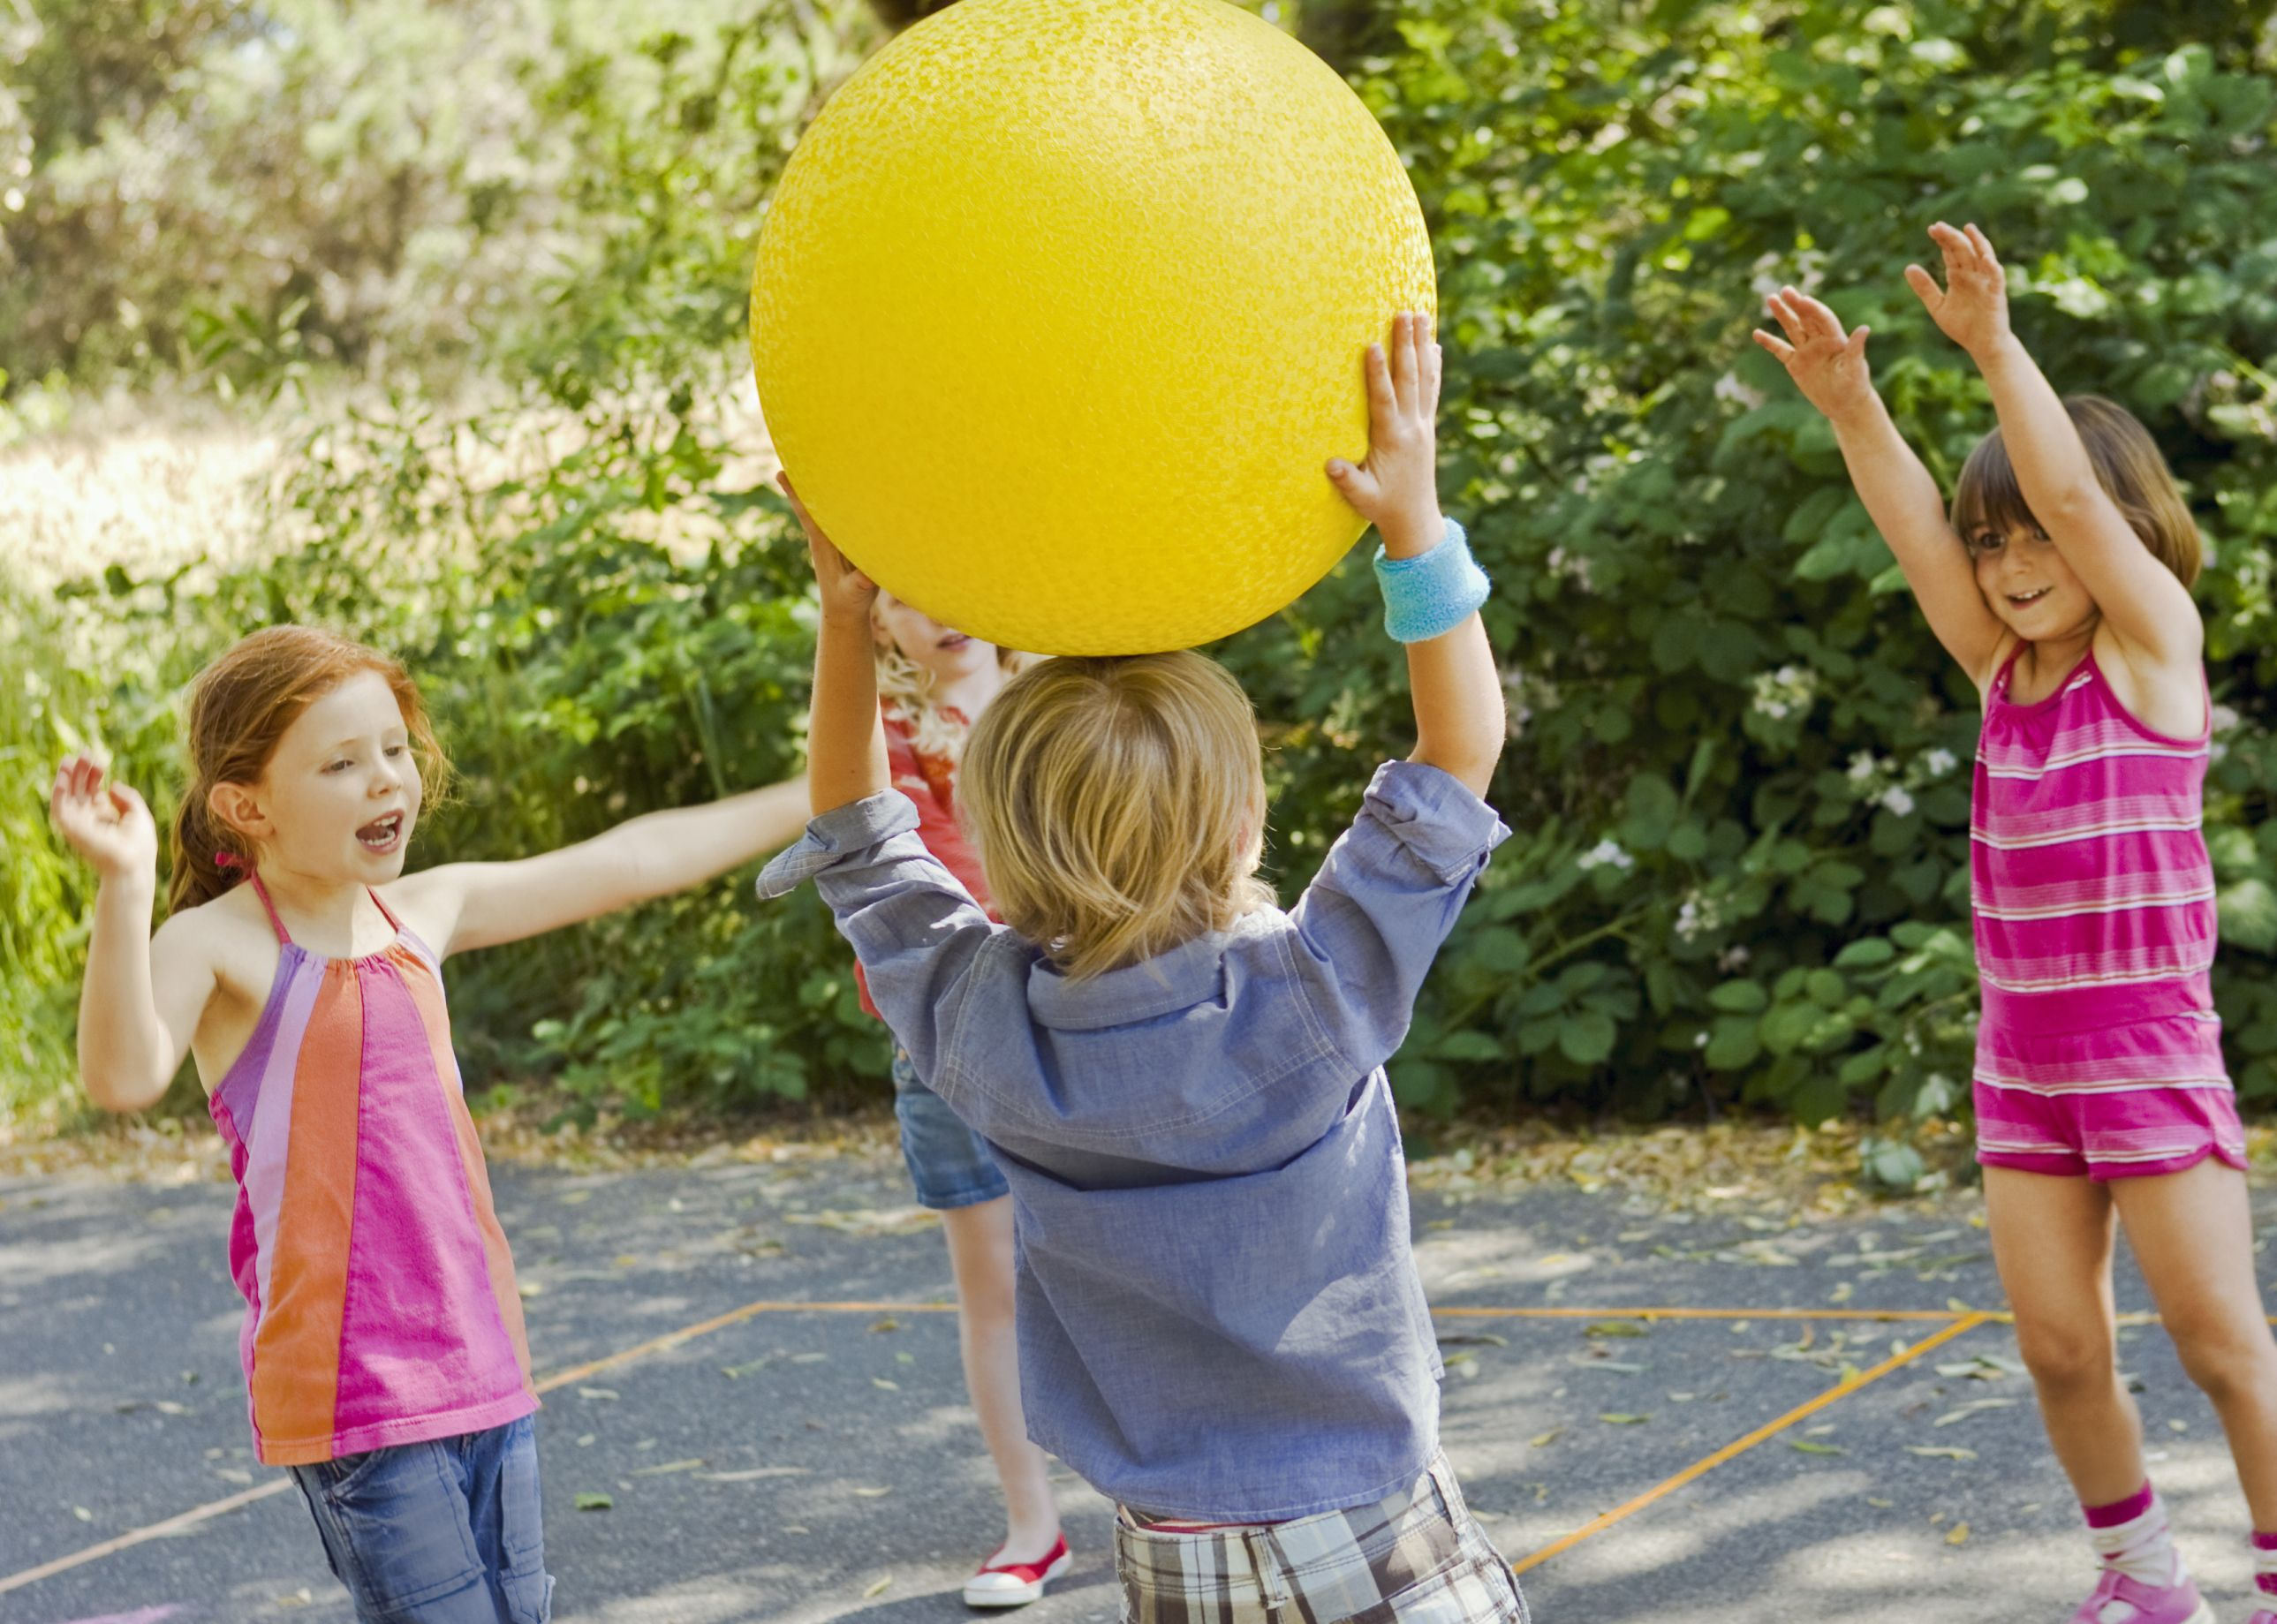 Four Square A Fun Outdoor Ball Game for Kids